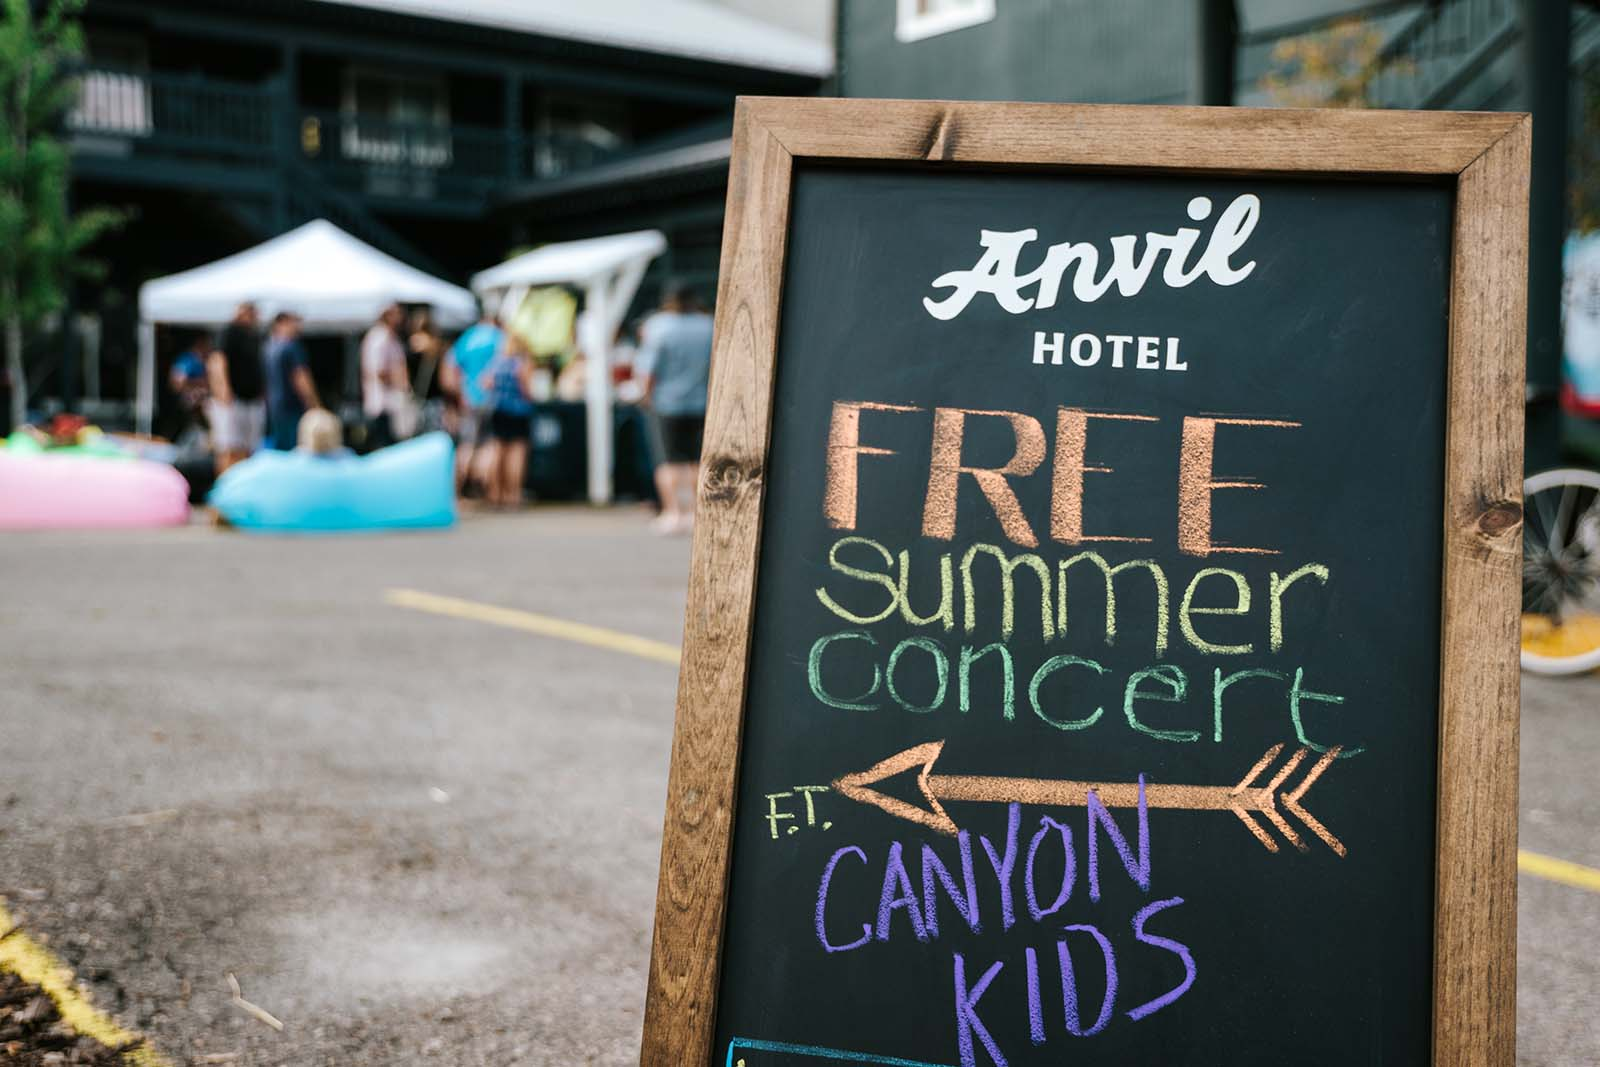 Free summer concert series sign at Anvil Hotel